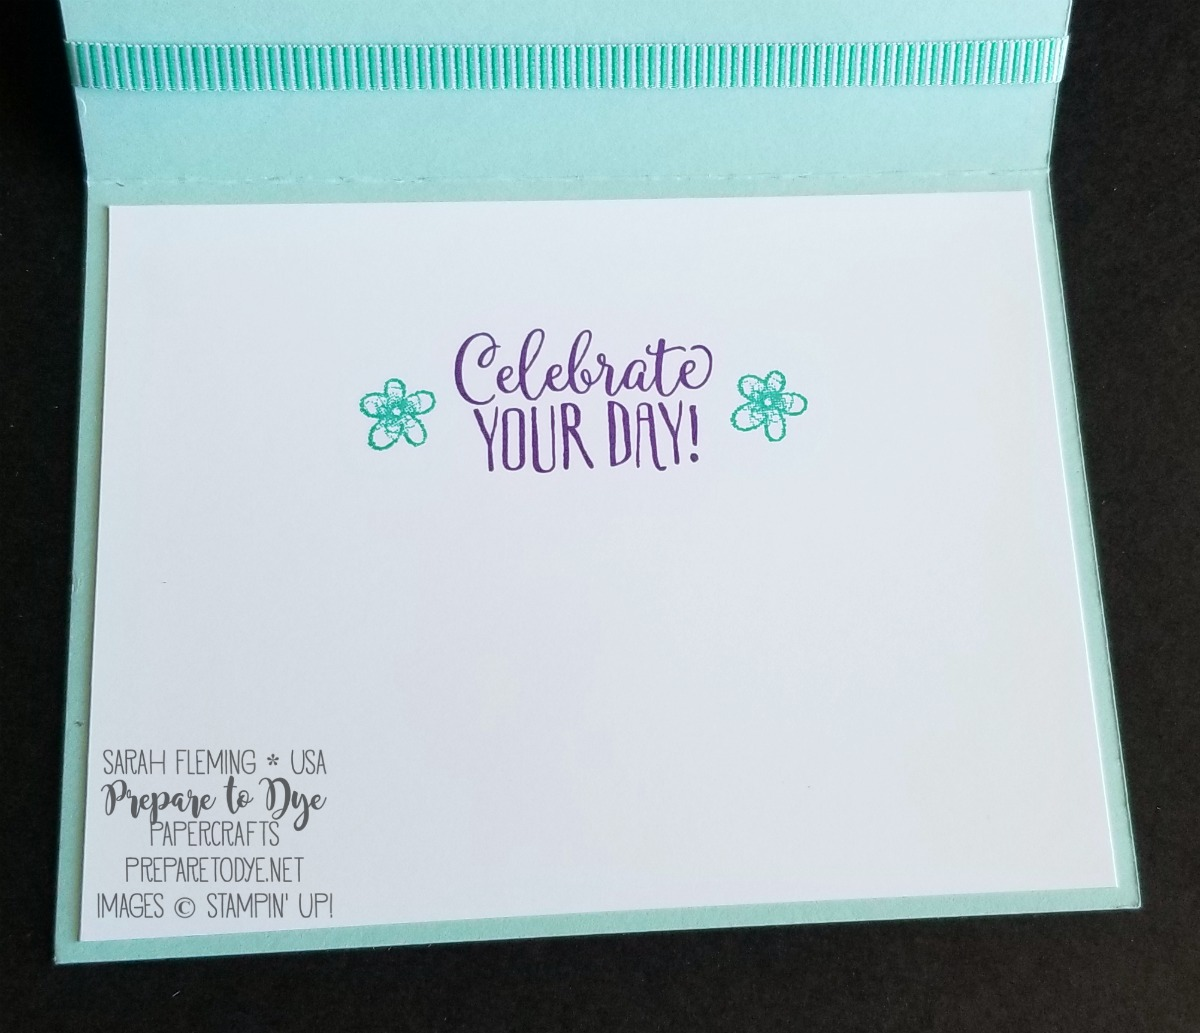 Stampin' Up! Occasions 2019 and Sale-A-Bration 2019 sneak peeks - handmade cupcake card - Hello Cupcake with Gingham Gala paper - Sarah Fleming - Prepare to Dye Papercrafts